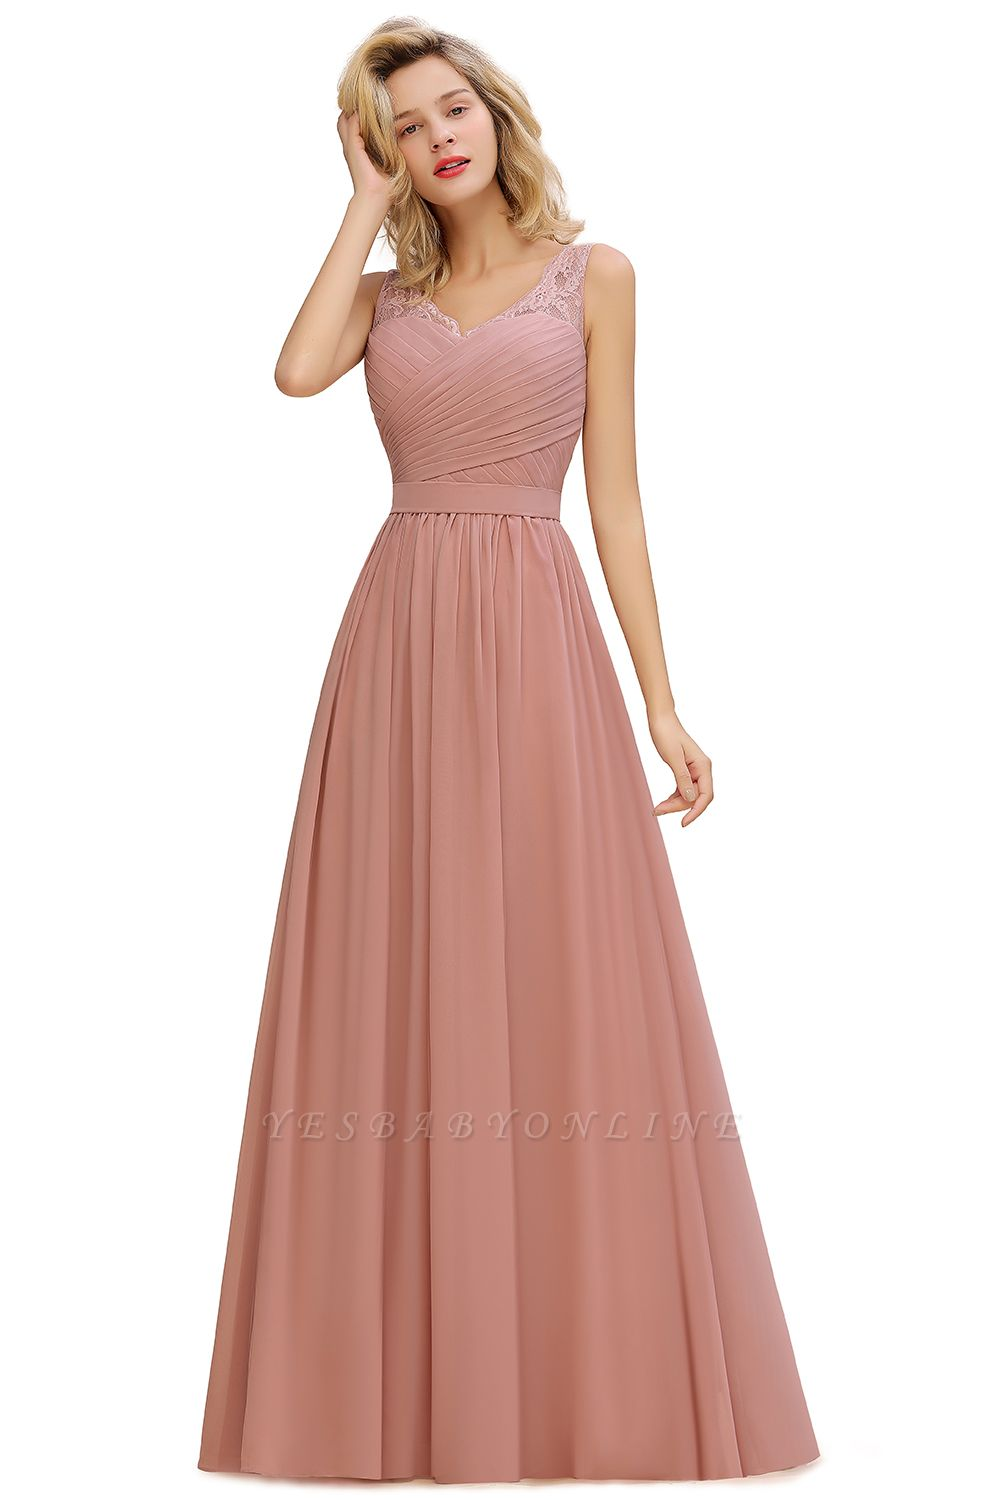 Simple V-neck Sleeveless Long Prom Dresses with soft Pleats